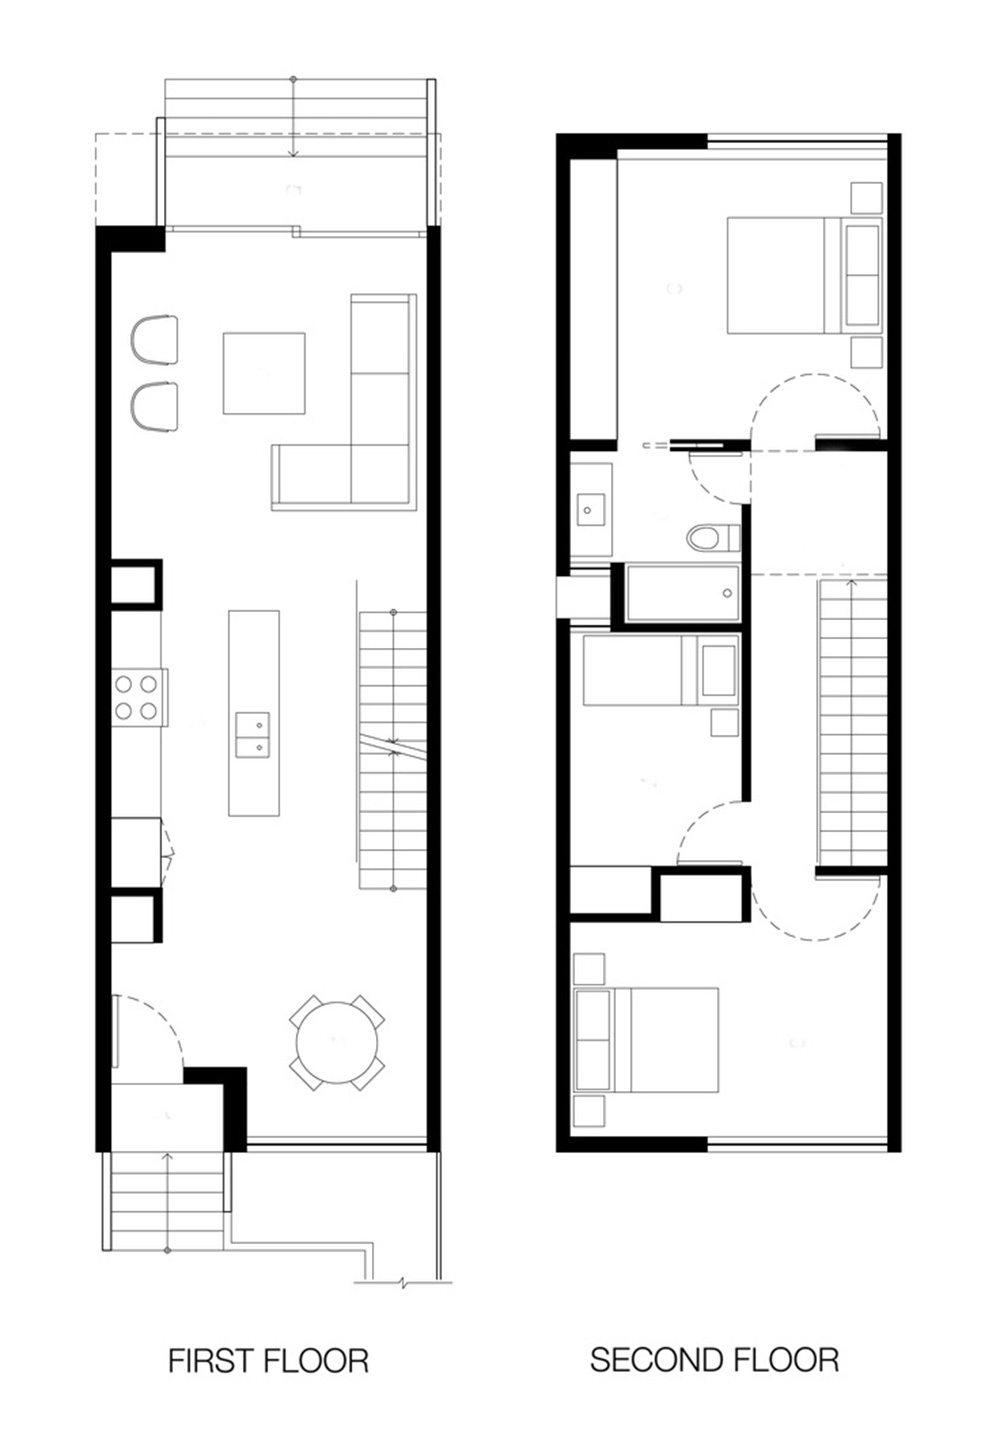 Characteristics of simple minimalist house plans for Home designs 2 floor